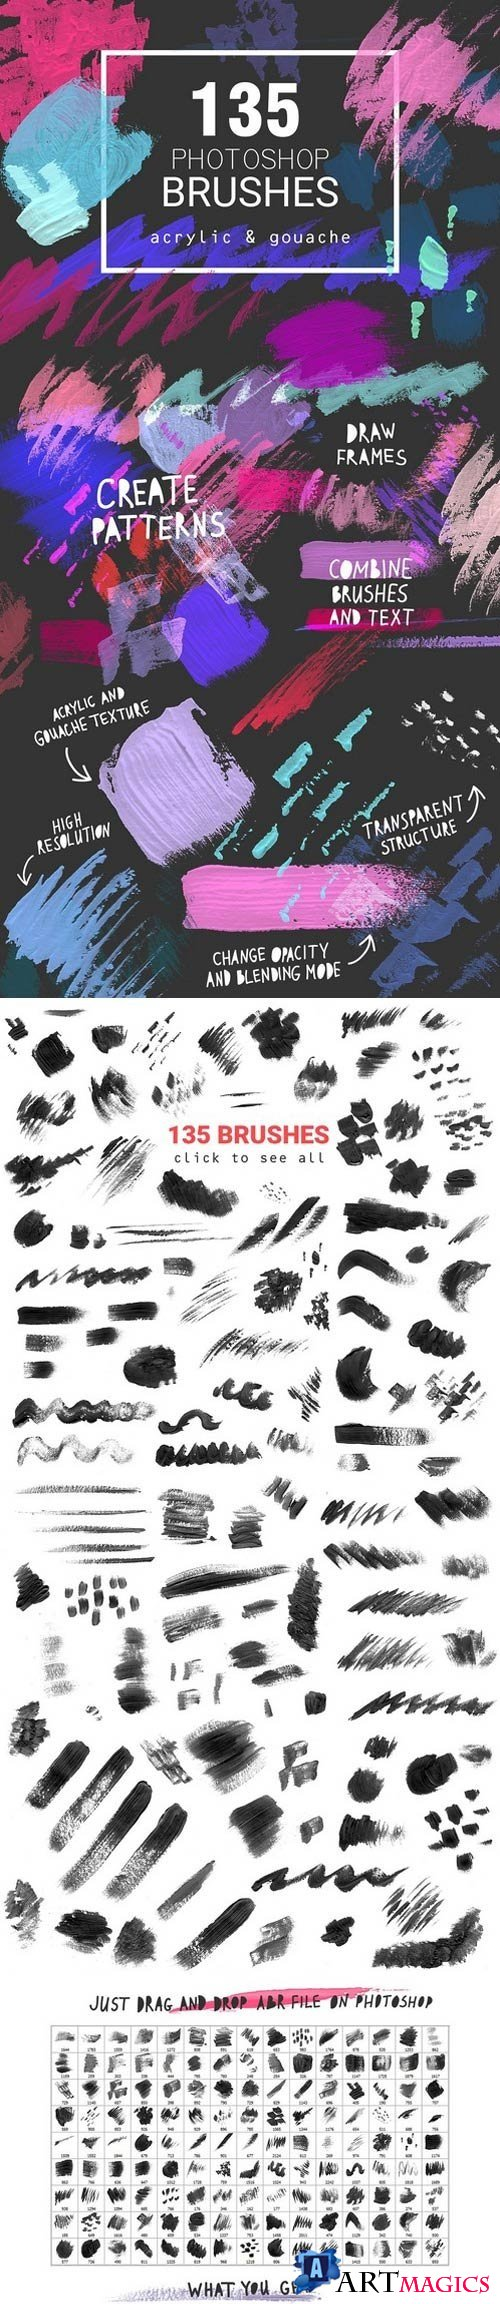 Acrylic&Gouache - 135 PS brushes - 2152887 (Updated)